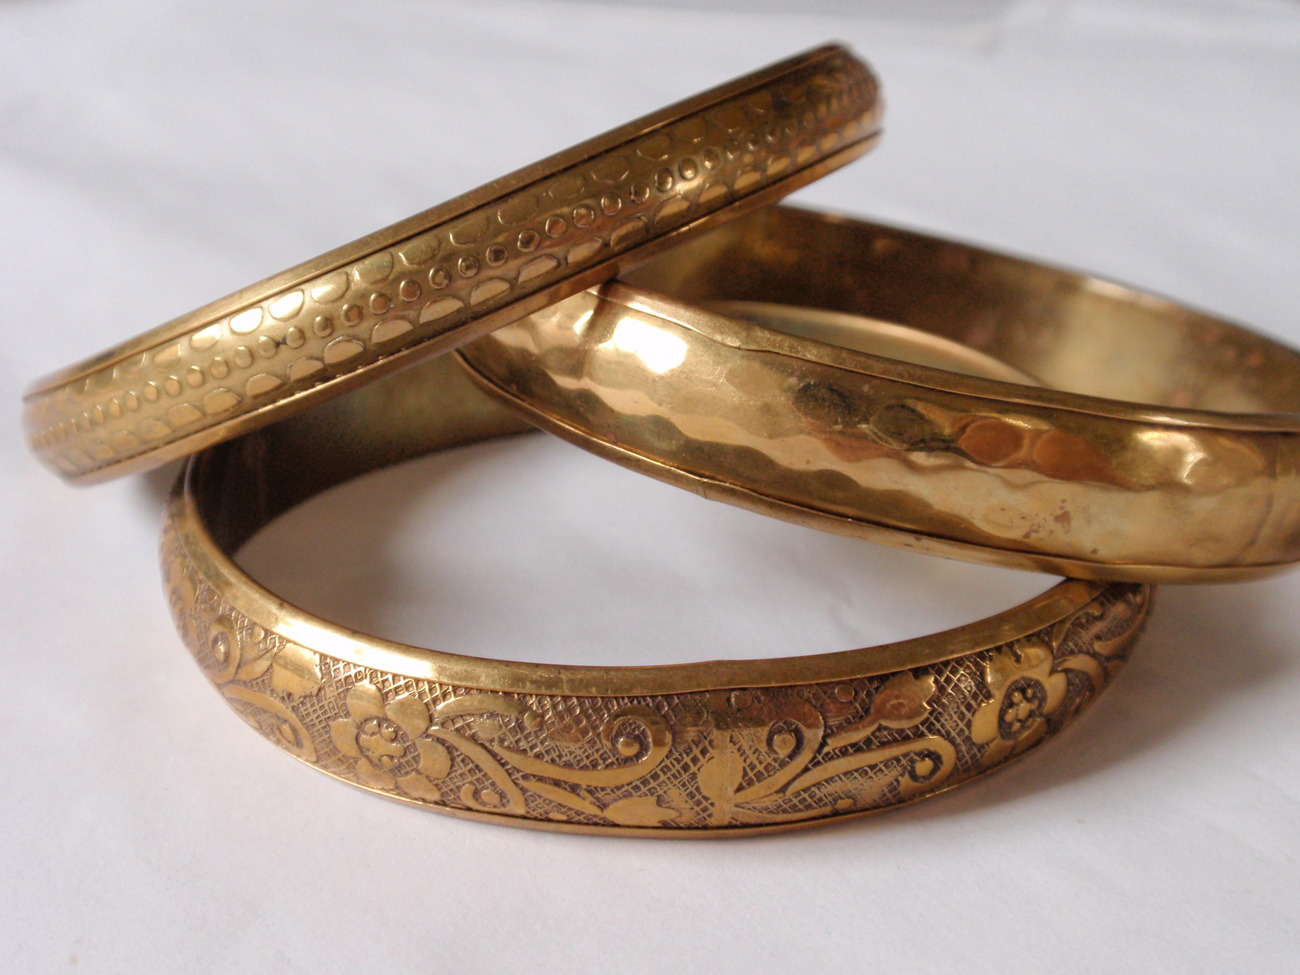 3 Brass Bangle Bracelets, Floral, Hammered, Textured Designs